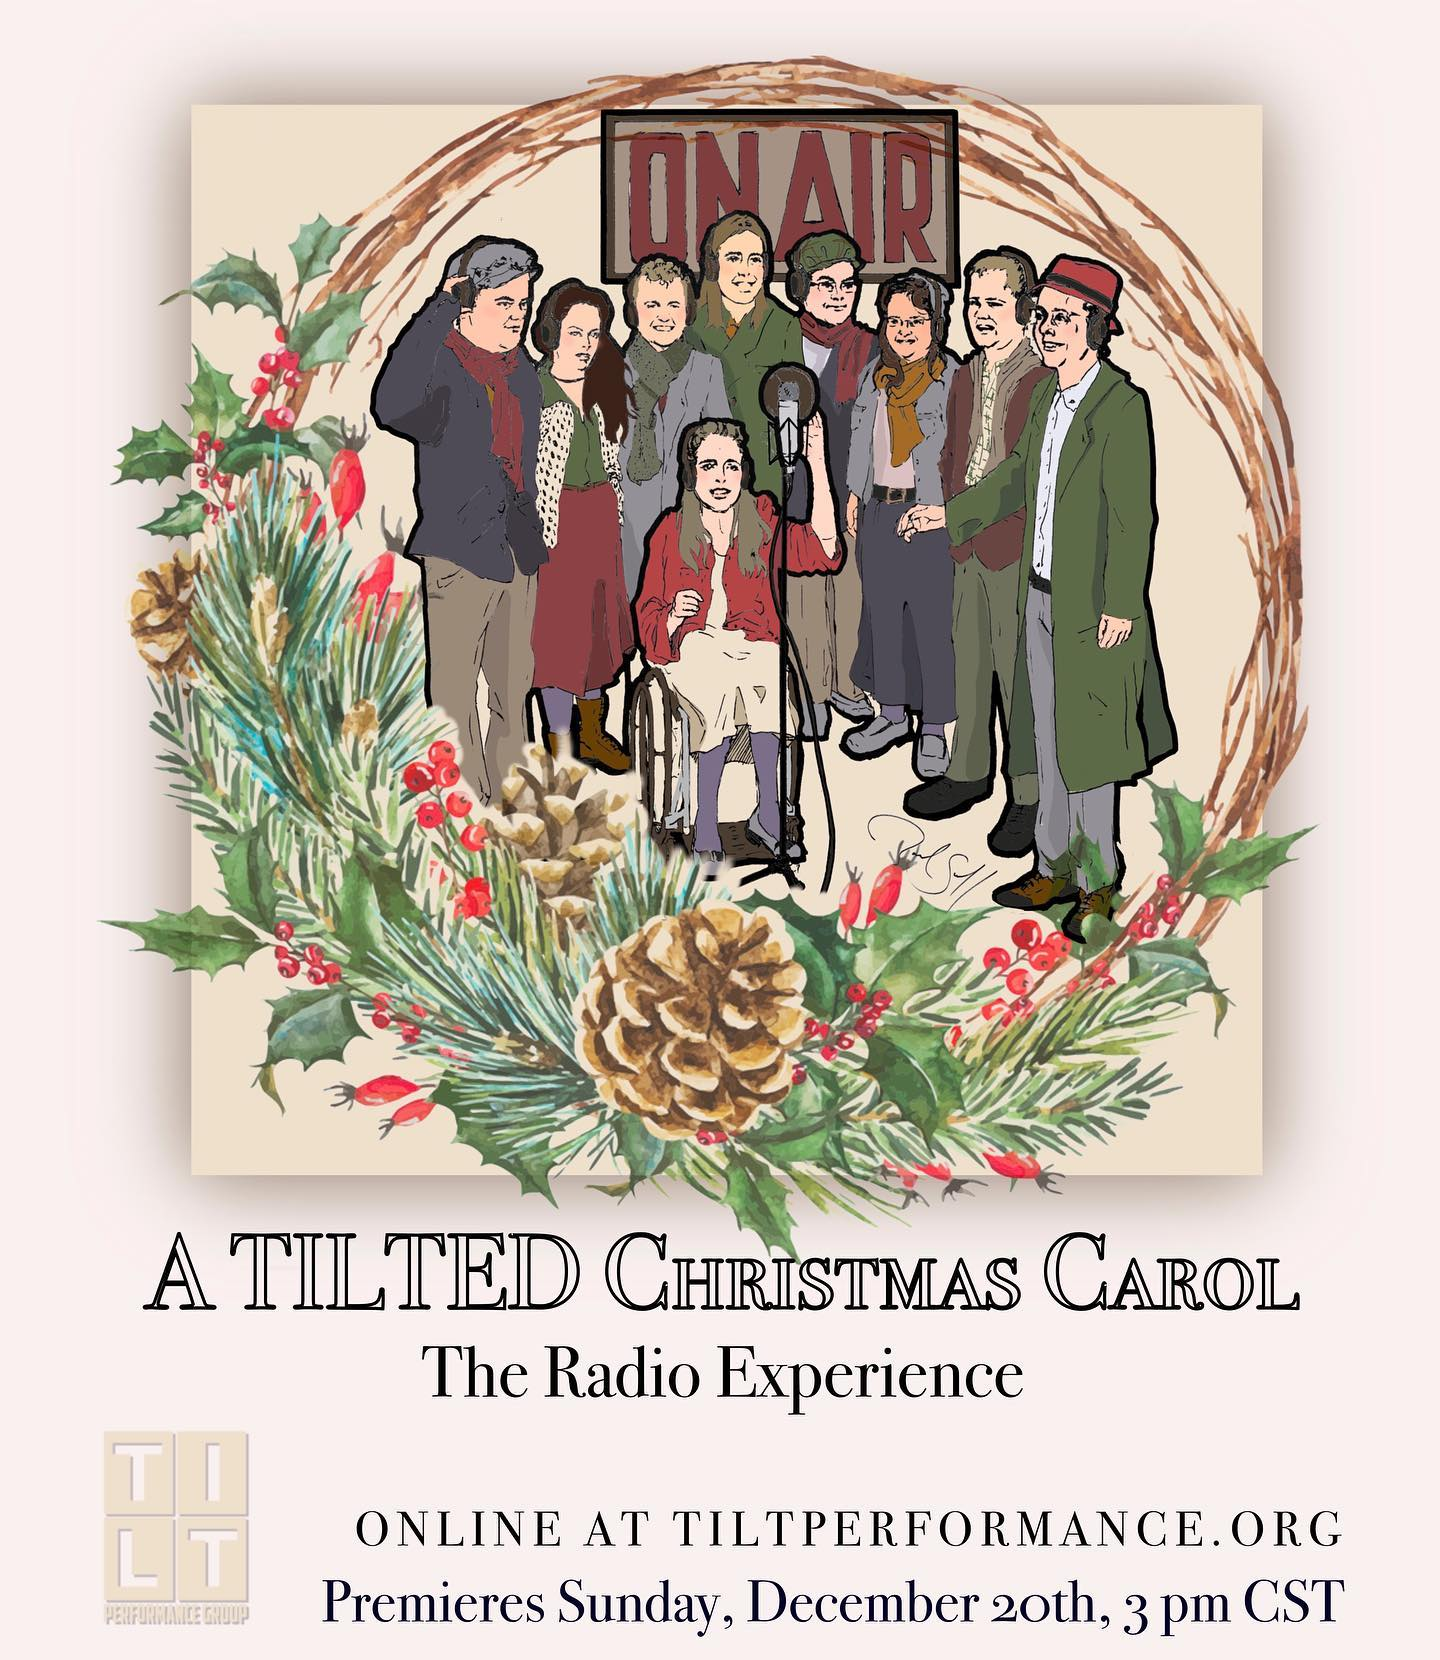 A Tilted Christmas Carol - The Radio Experience by TILT Performance Group